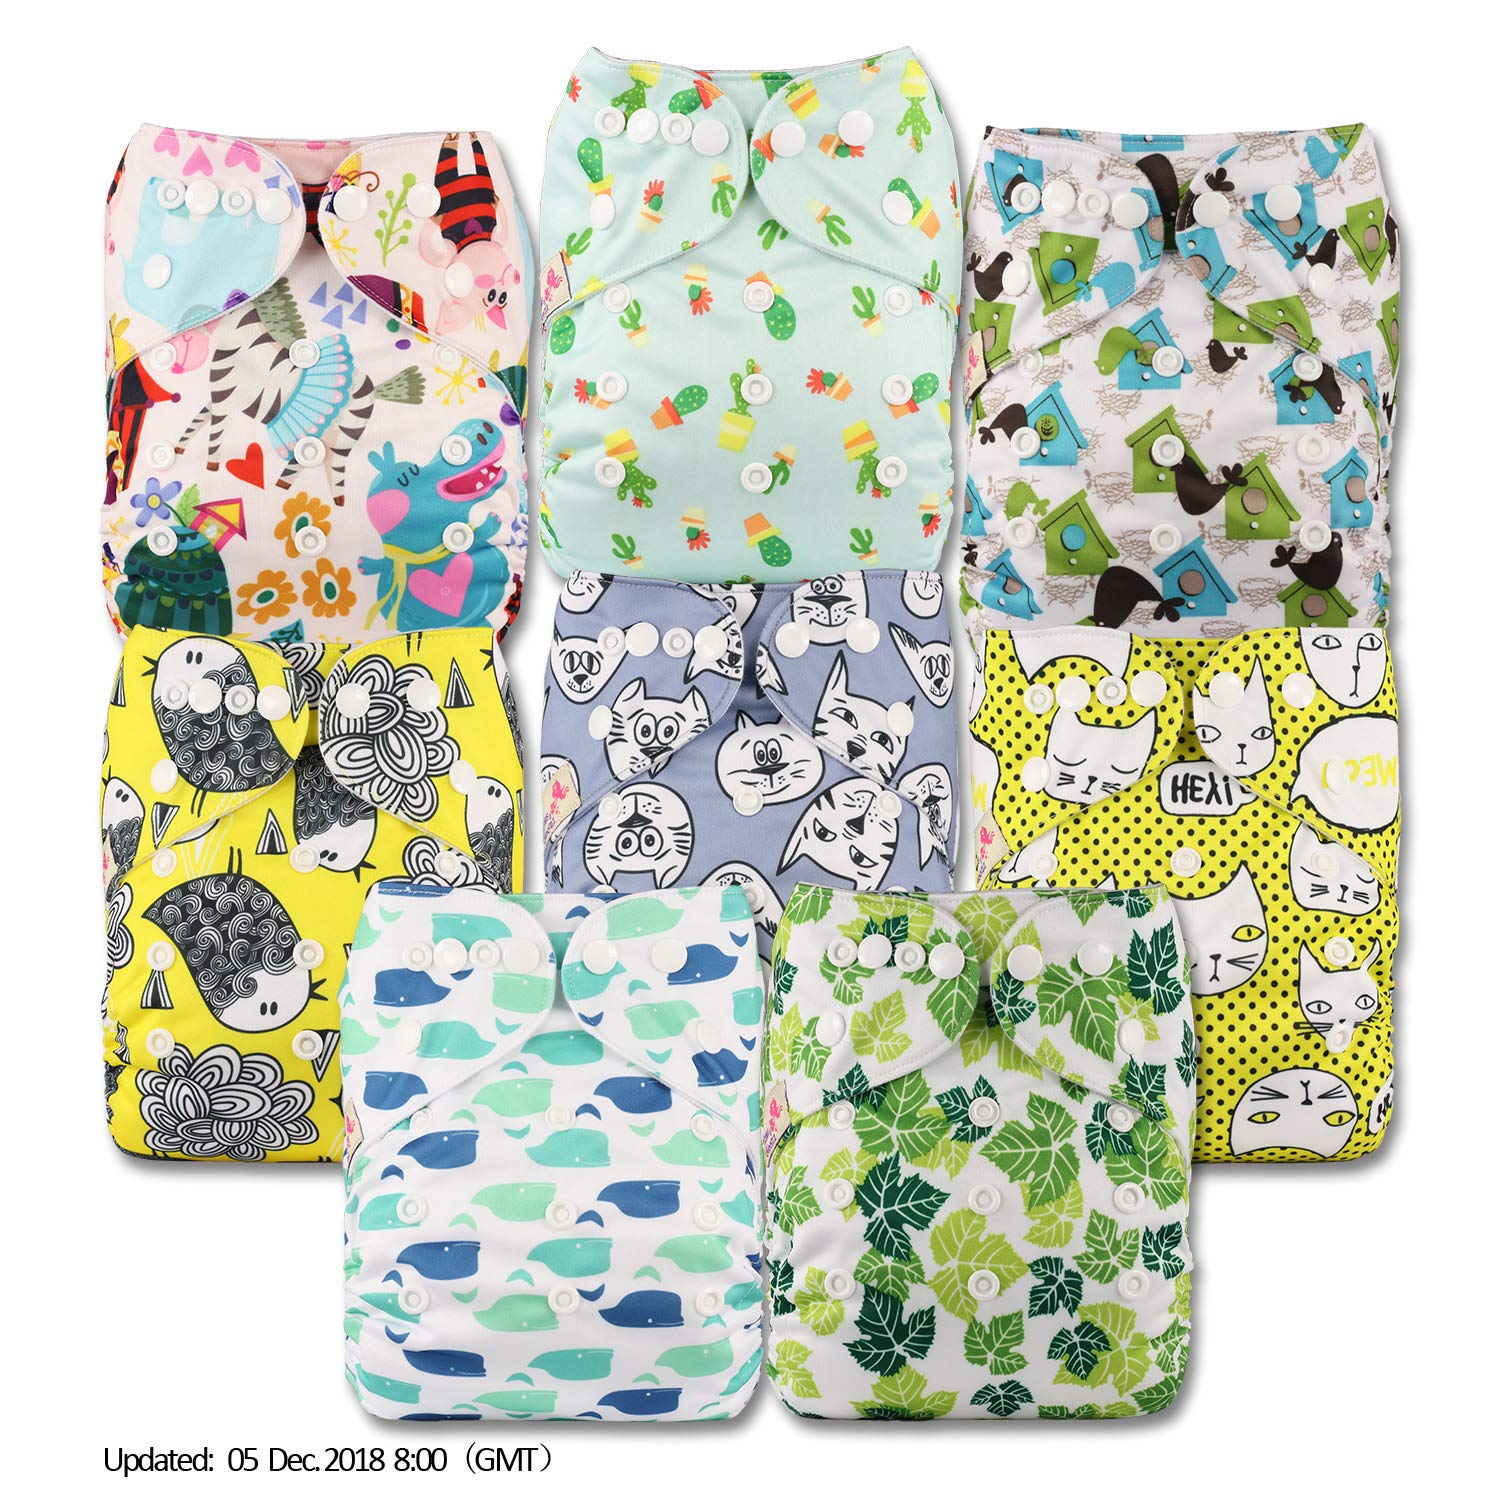 Littles & Bloomz, Reusable Pocket Cloth Nappy, Fastener: Popper, Set of 8, Patterns 808, With 16 Bamboo Inserts